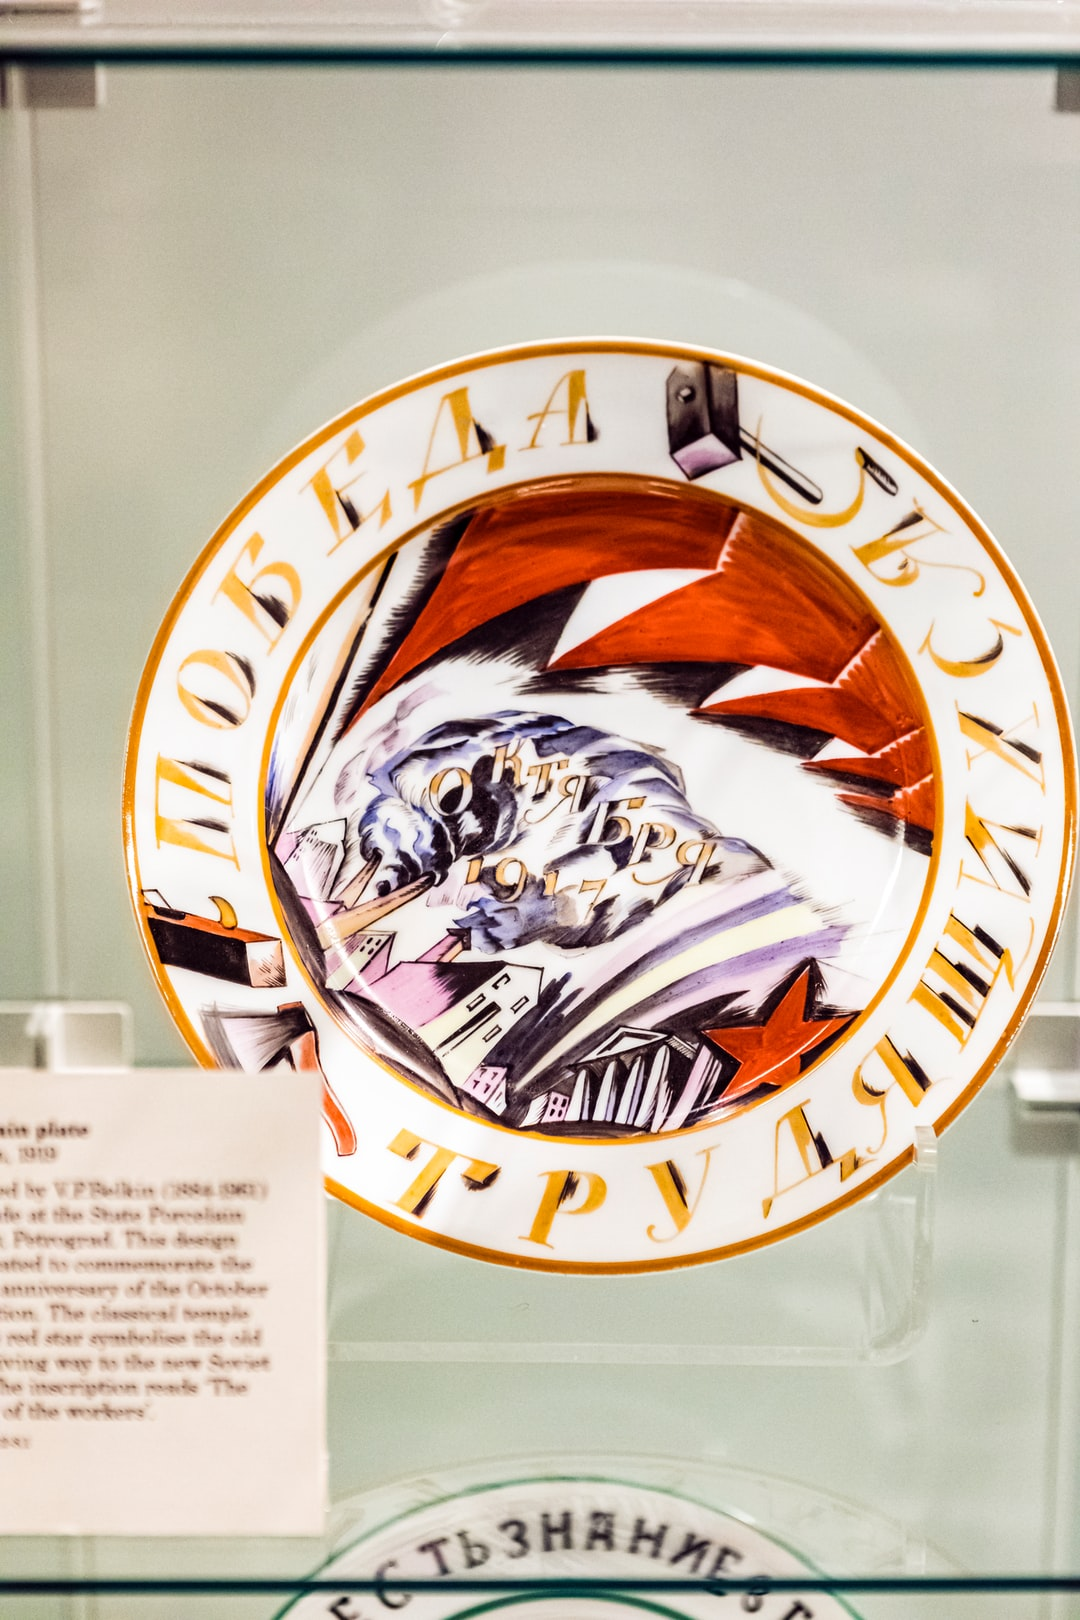 Porcelain plates with artwork from 1920s that are commemorating the Bolshevik Revolution of 1971. British Museum, London, England, January 2020.